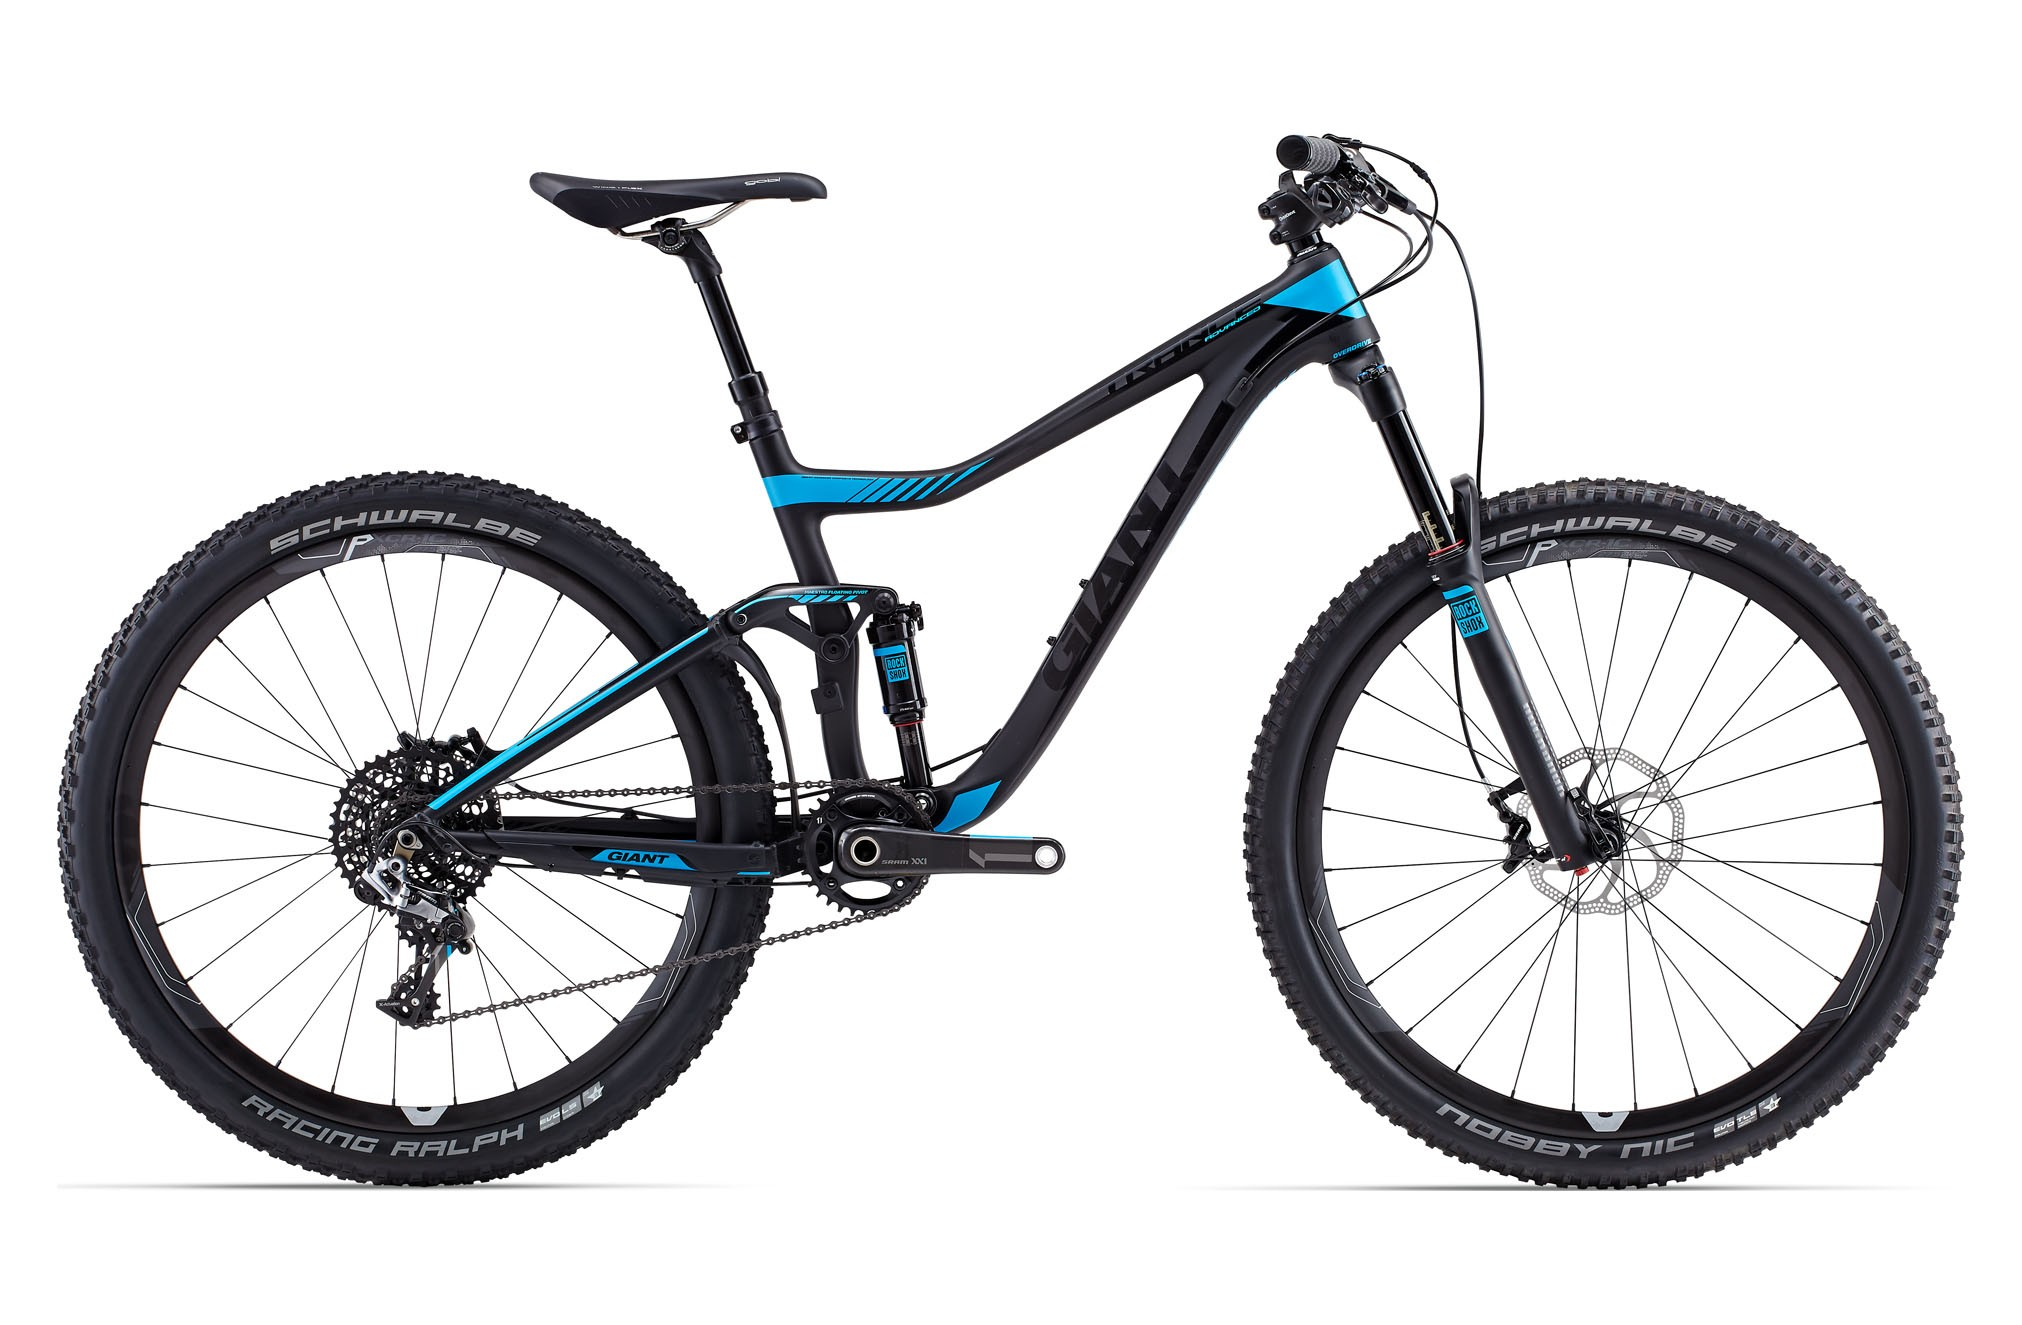 Горный велосипед Giant Trance Advanced 27.5 0 (2015)